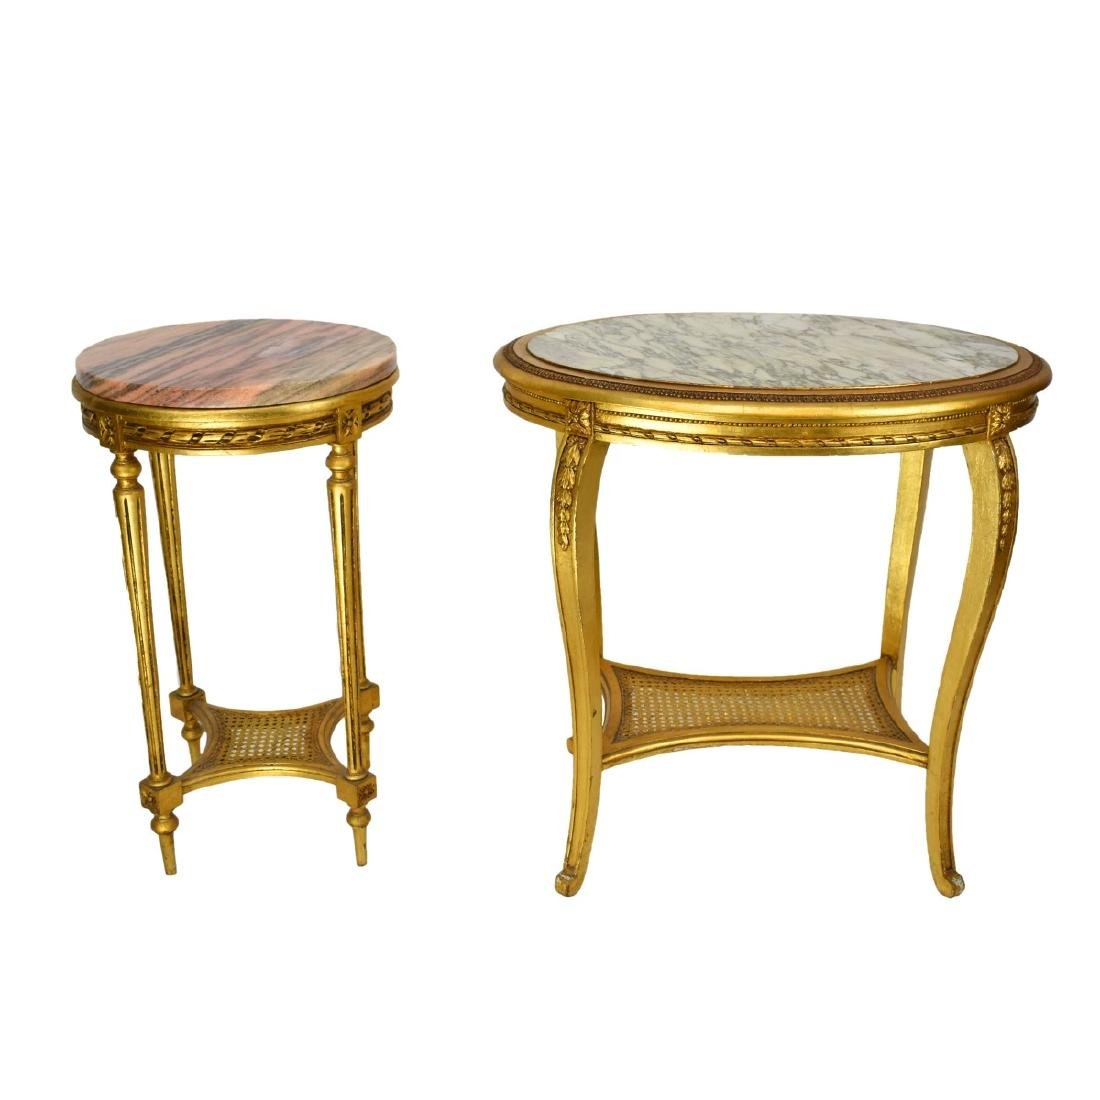 Italian Louis XVI Style Giltwood Marble Top Tables